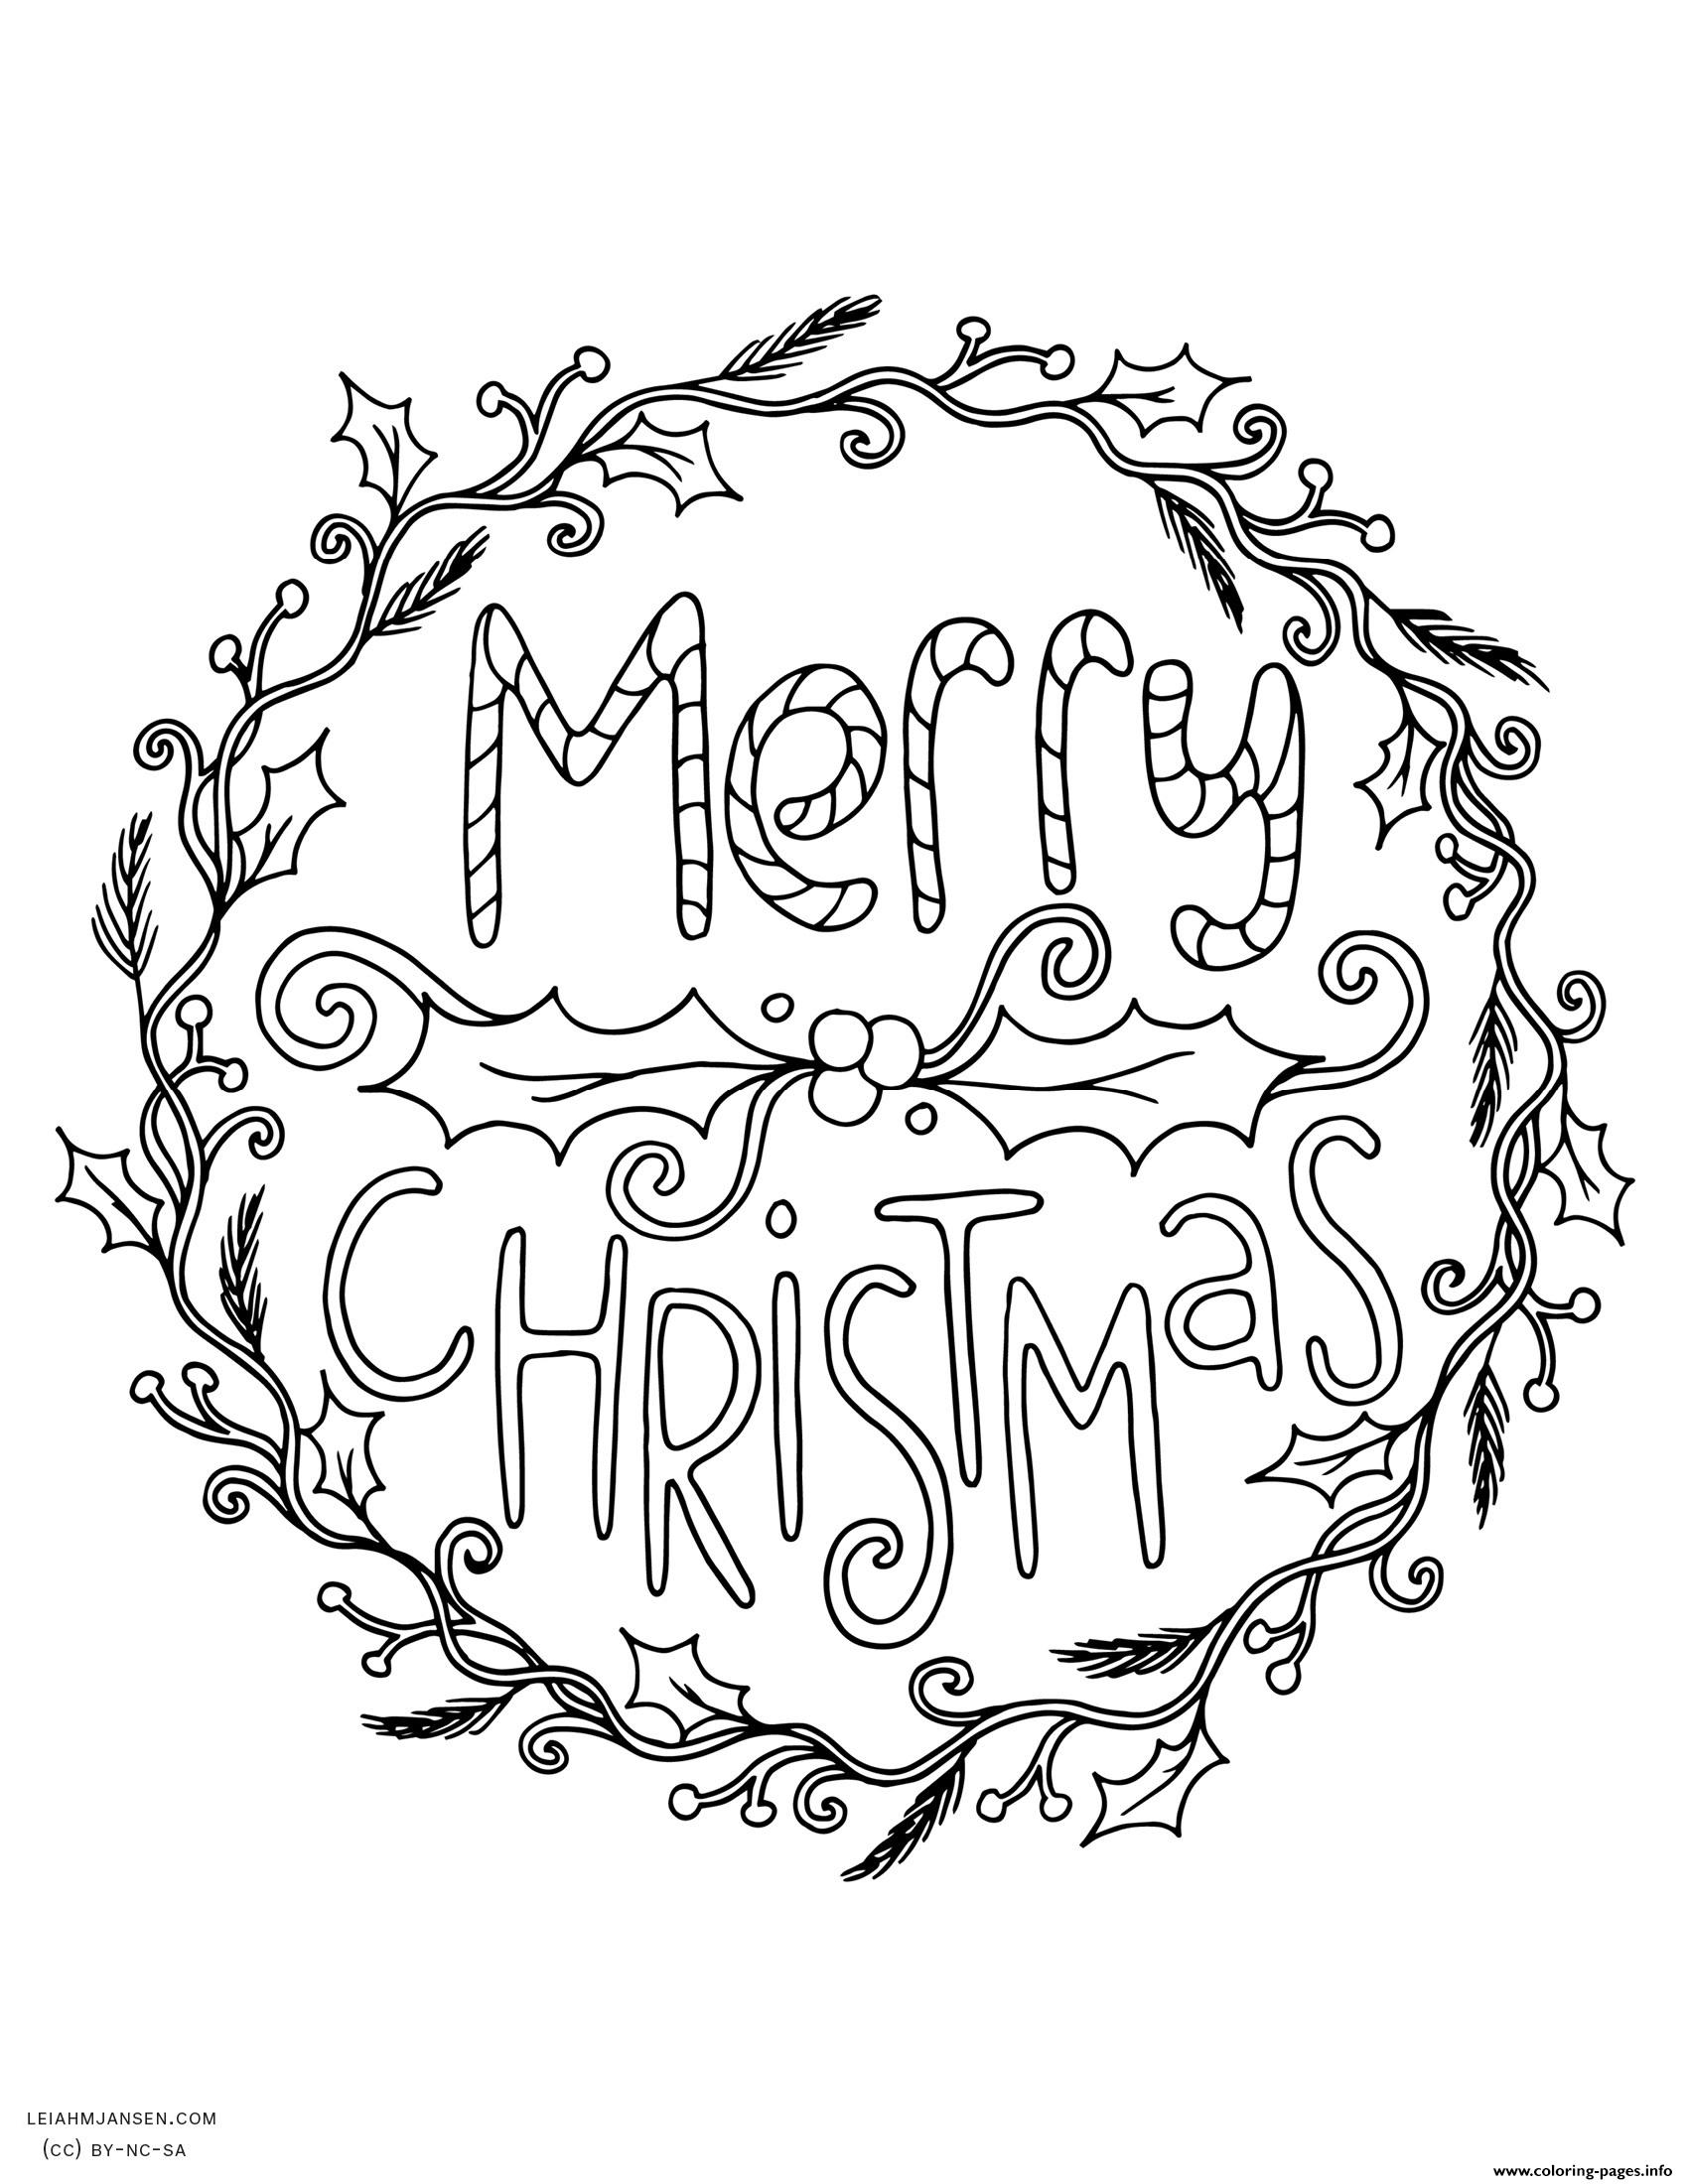 Merry Christmas Wreath Adult Coloring Pages Printable Merry Coloring Pages